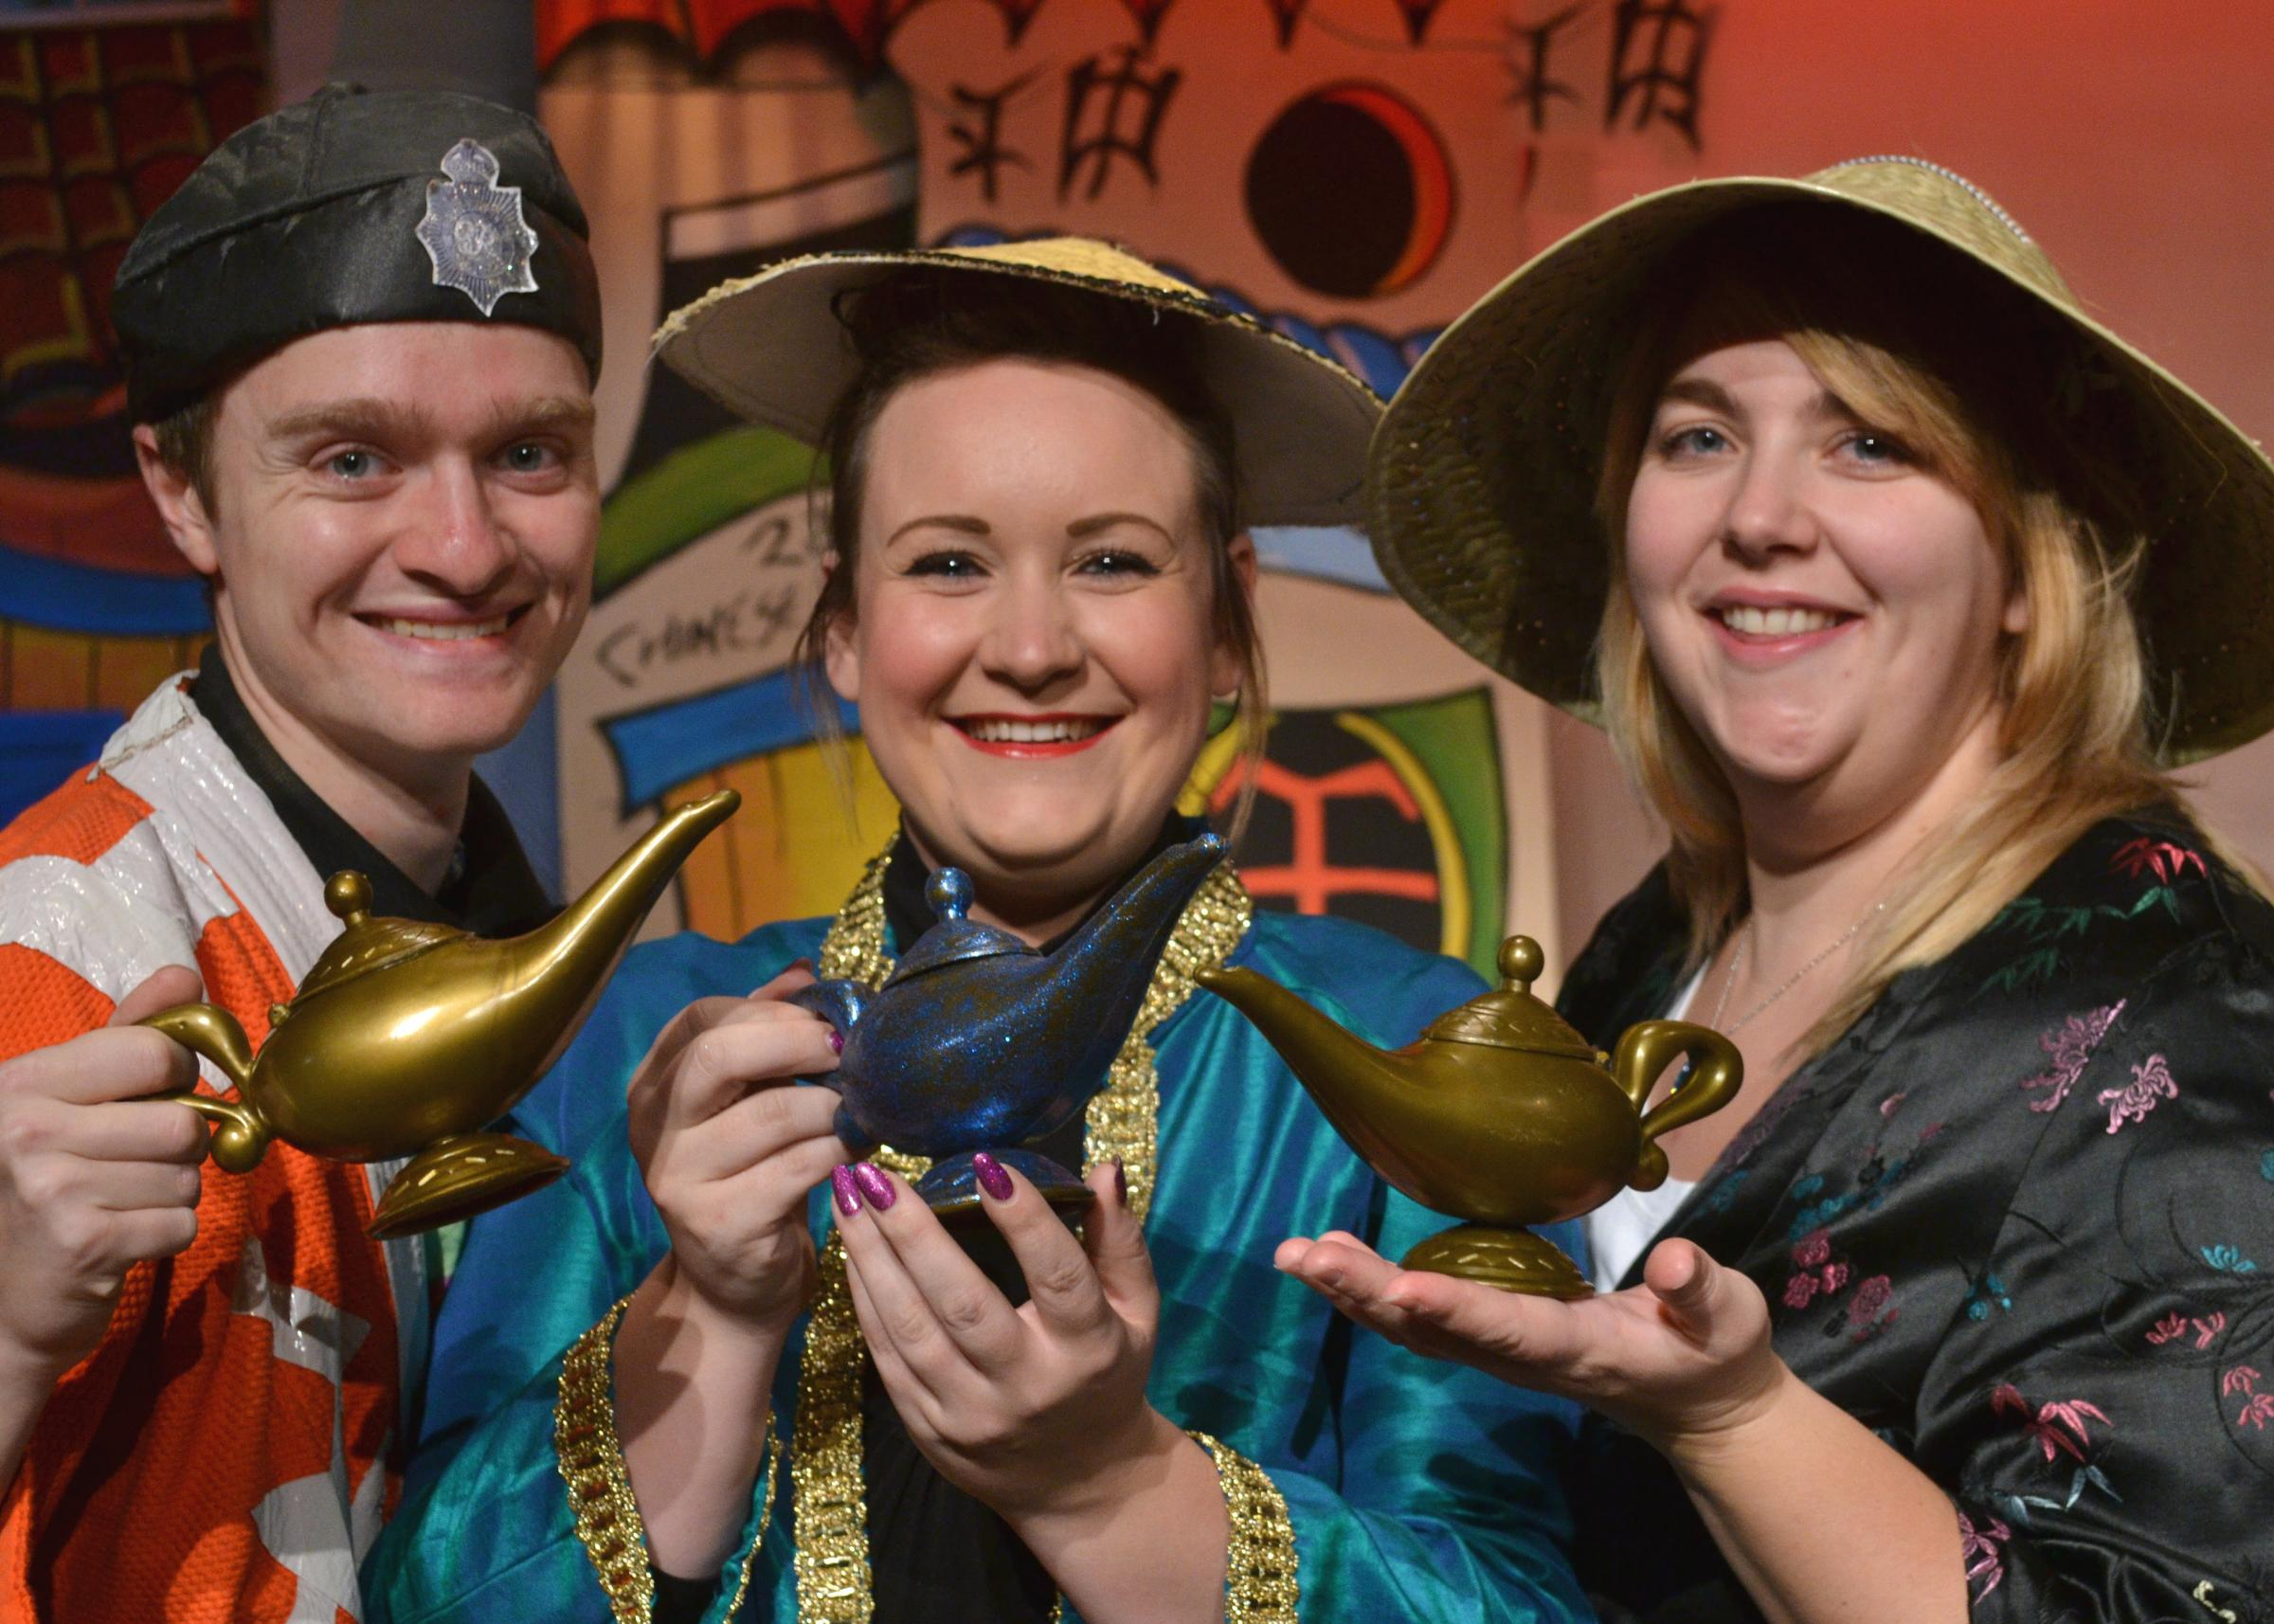 George Clayton (Wishee Washee), Natalie Forbes-Moore (Aladdin) and Fiona Robinson (Princess Jasmine) prepare for Aladdin at Oldbury Rep.